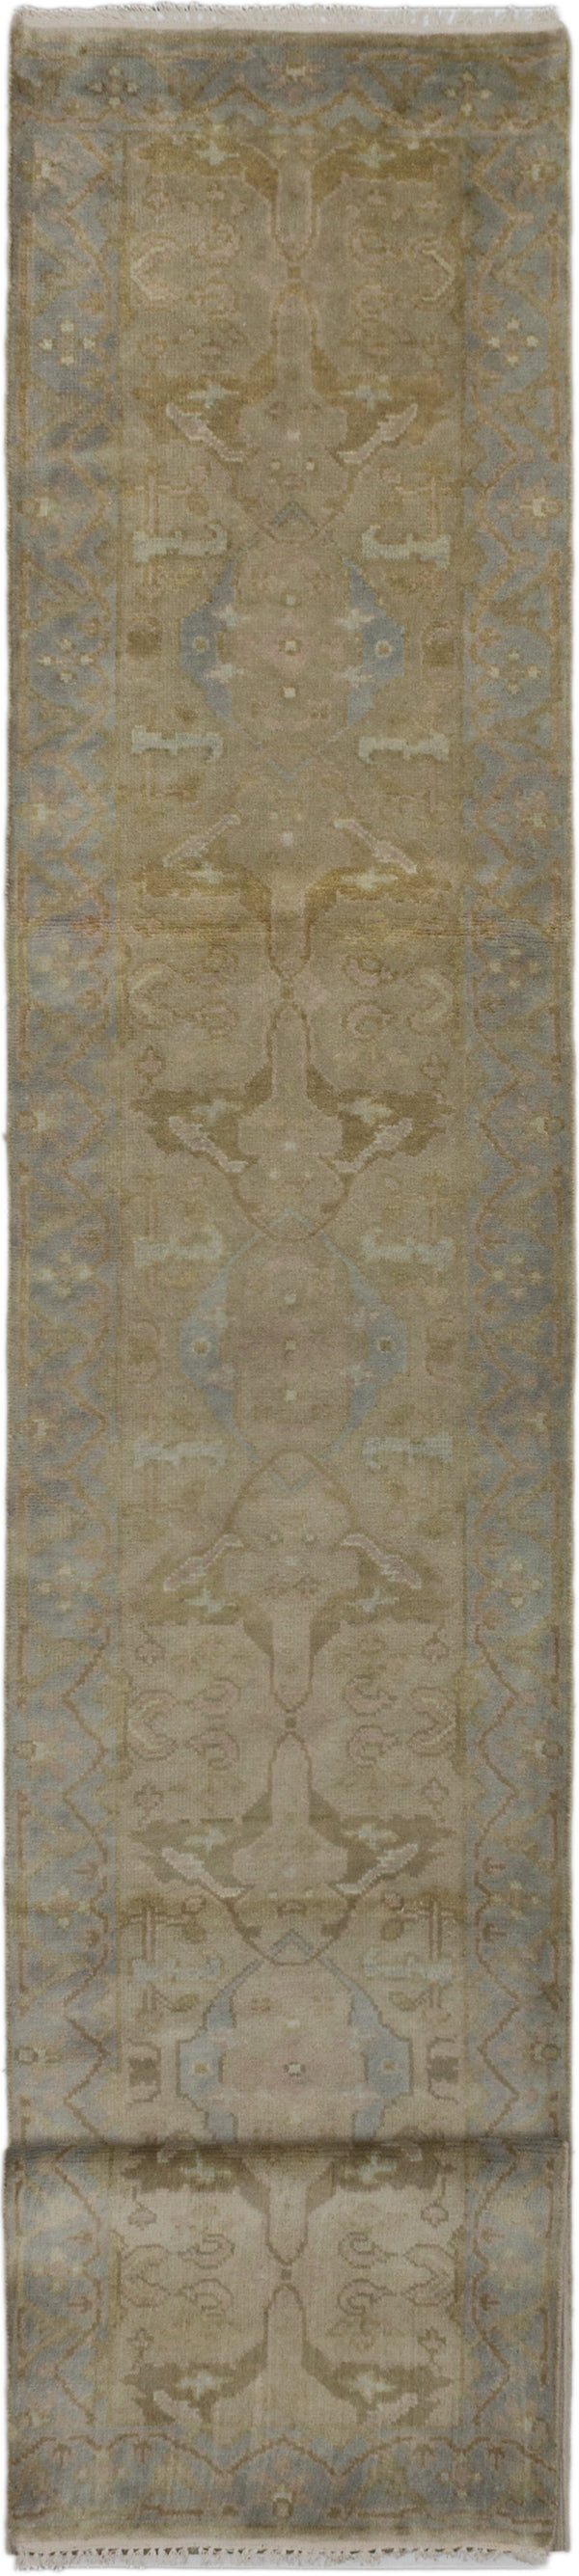 "Hand-knotted Indian Floral  Traditional Royal-Ushak Runner rug  Beige 2'8 x 15'8"" """